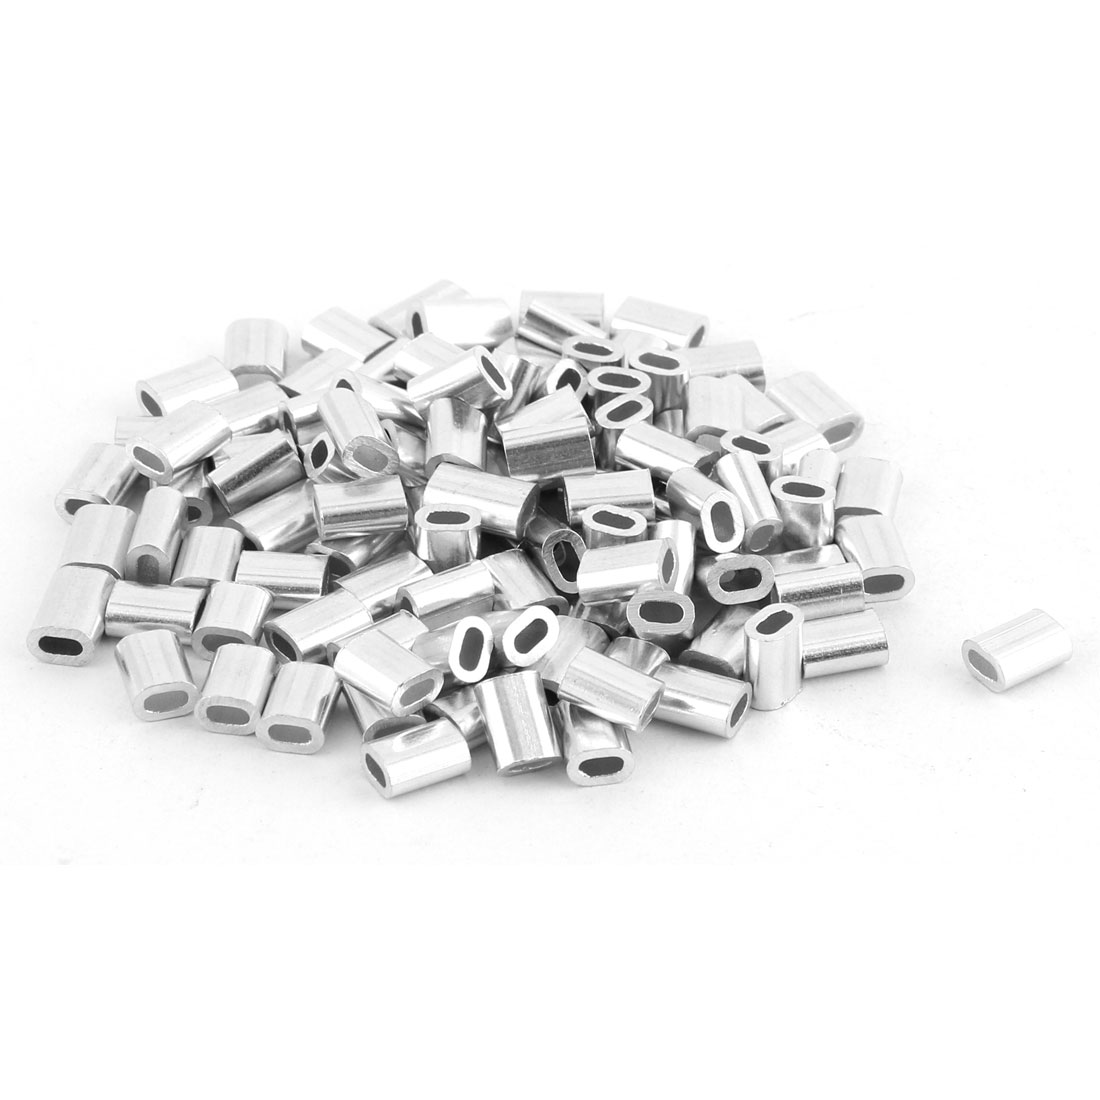 1.2mm Steel Wire Rope Oval Aluminum Ferrules Sleeves 5mm x 3mm Silver Tone 100pcs